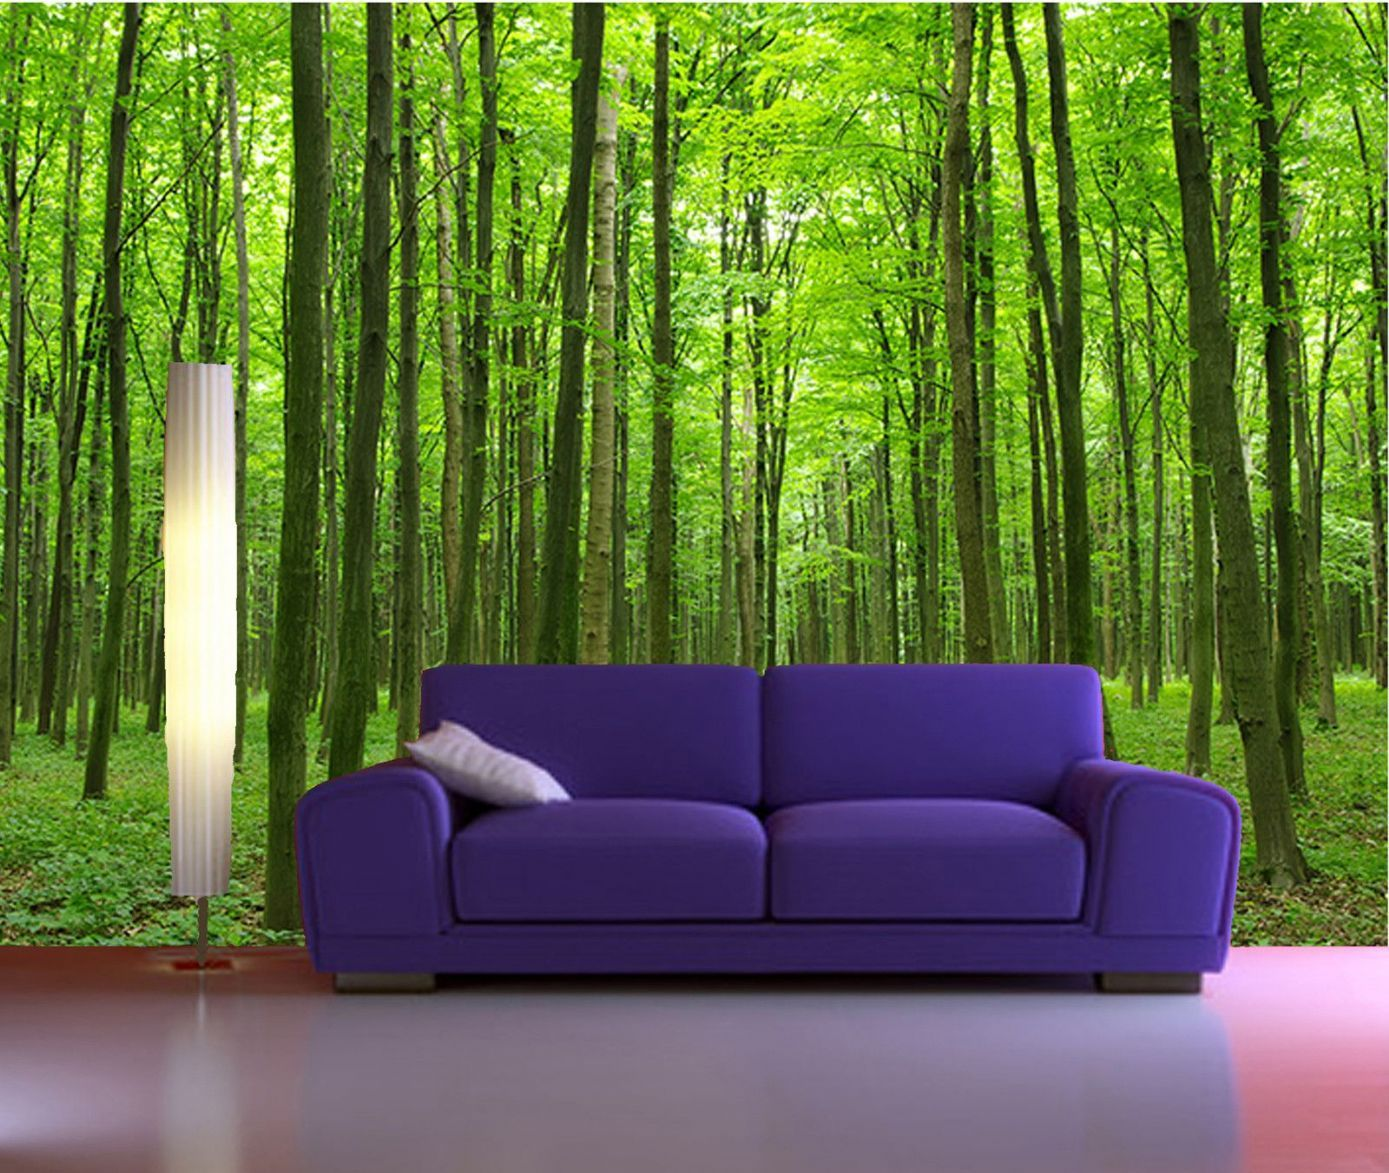 Self Stick Wall Murals | Peel And Stick Photo Wall Mural, Decor Wallpapers  Forest Art Part 30